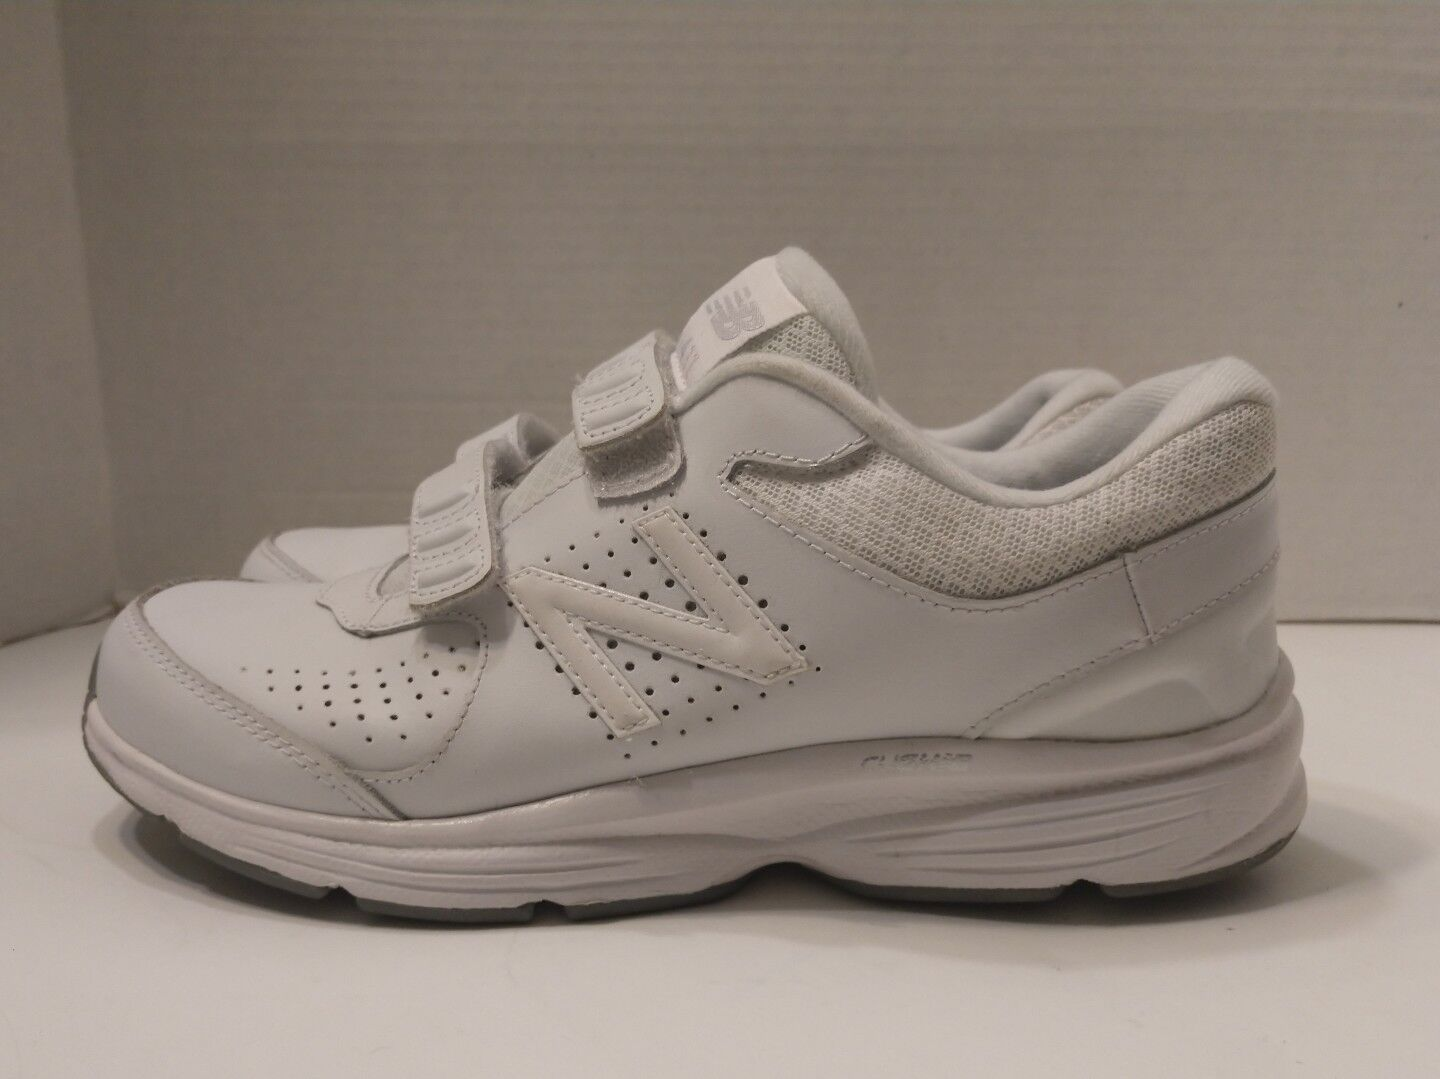 New Balance Women's Ww411v2 White Leather Casual Walking shoes